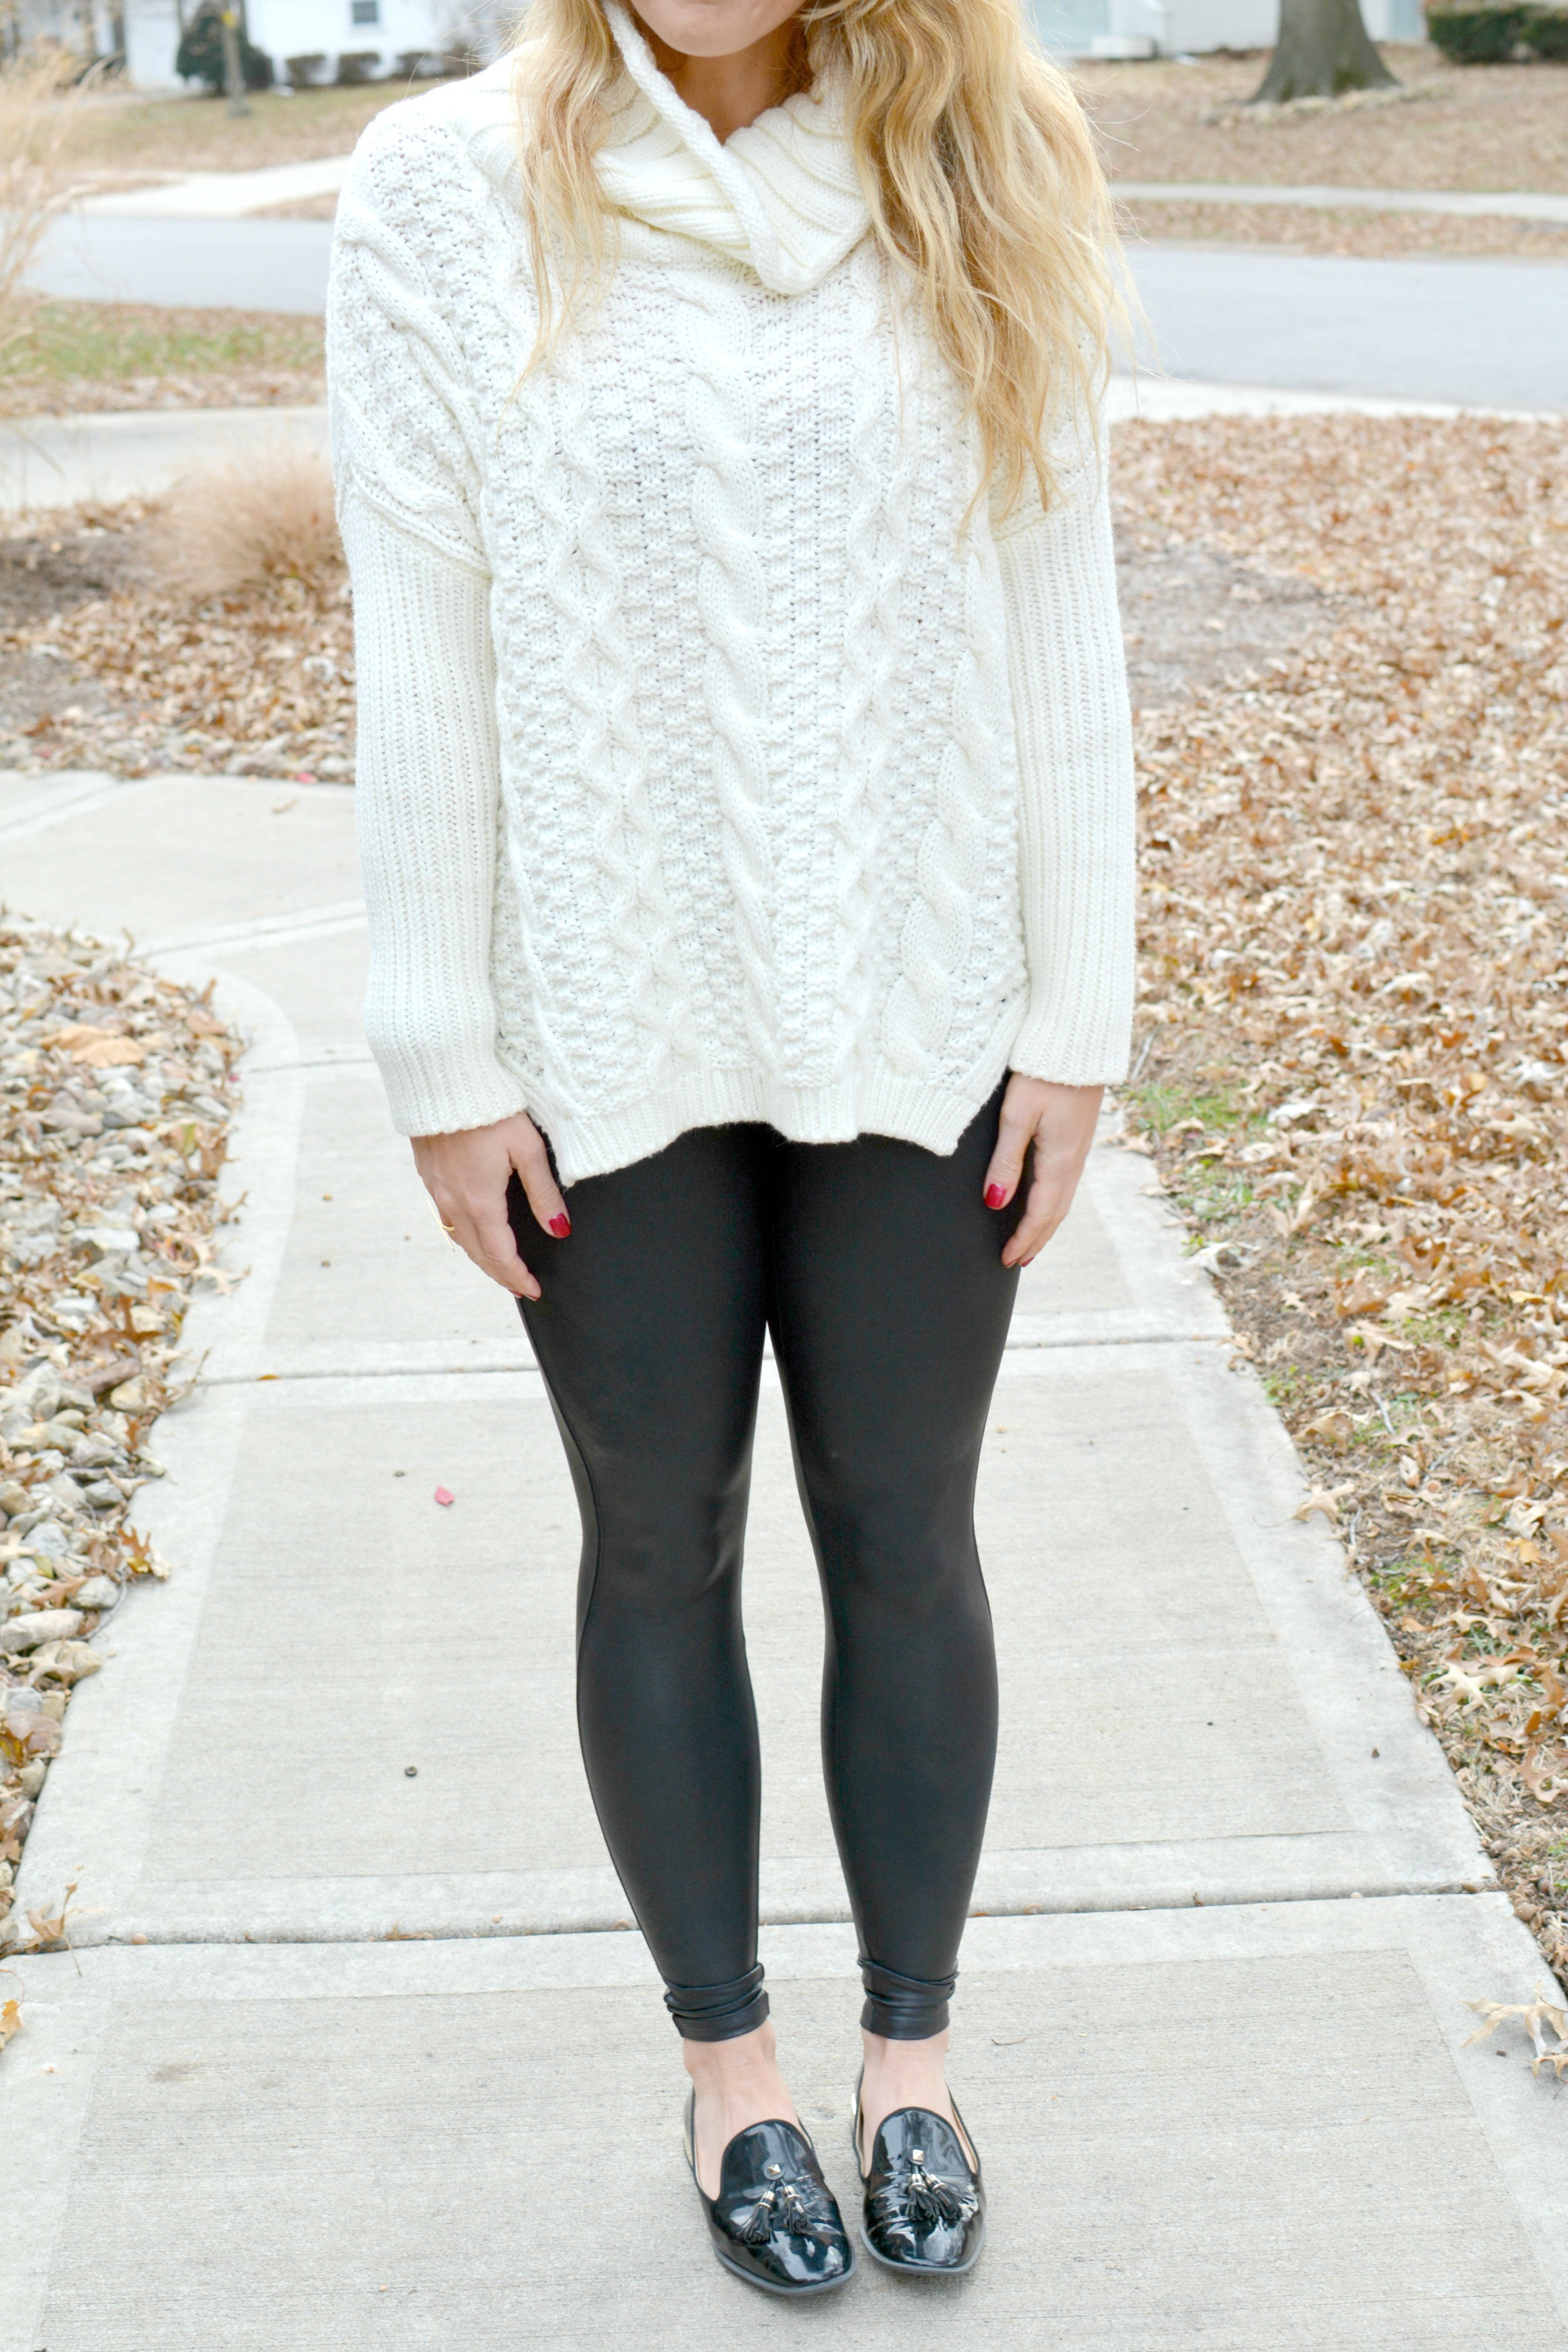 Ashley from LSR in an ivory cable knit sweater, Spanx leggings, and patent leather loafers